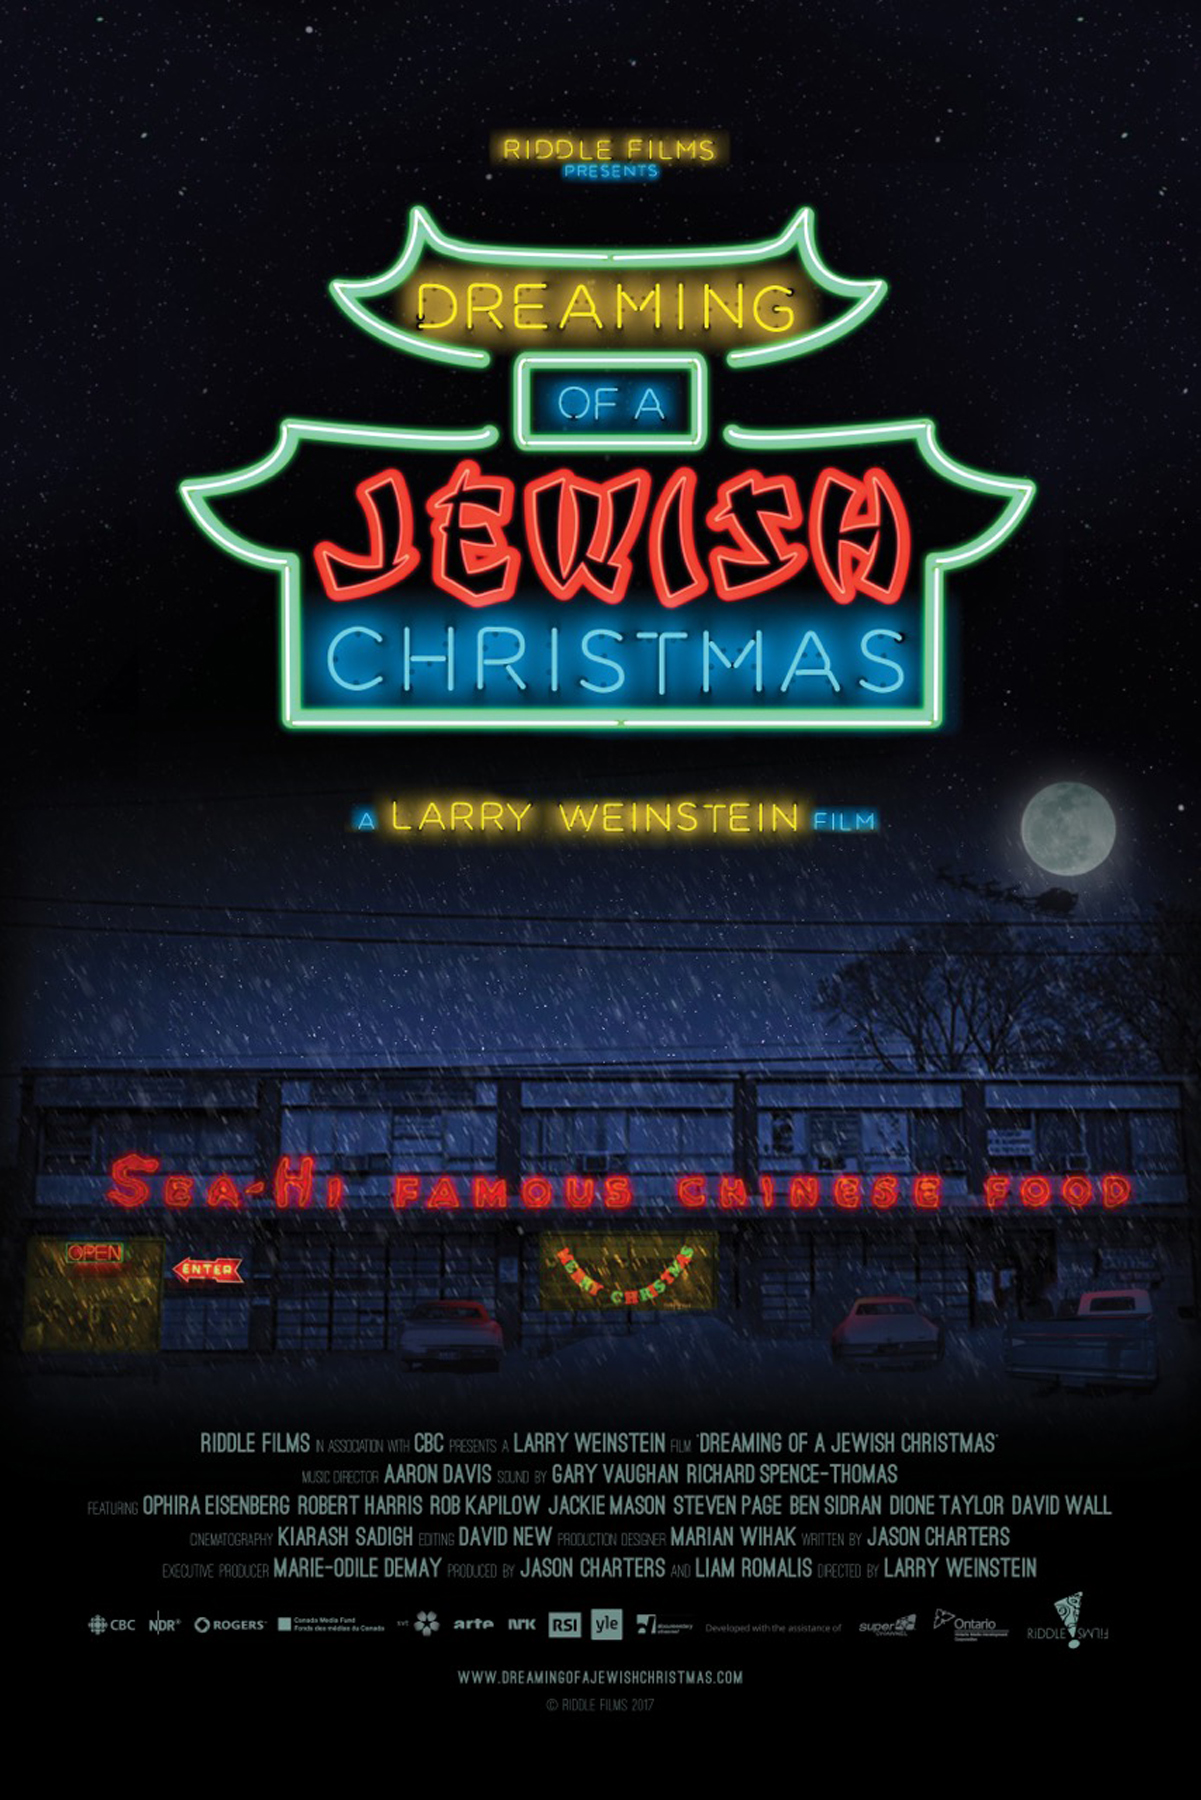 TBJFF.ORG Dreaming Of A Jewish Christmas